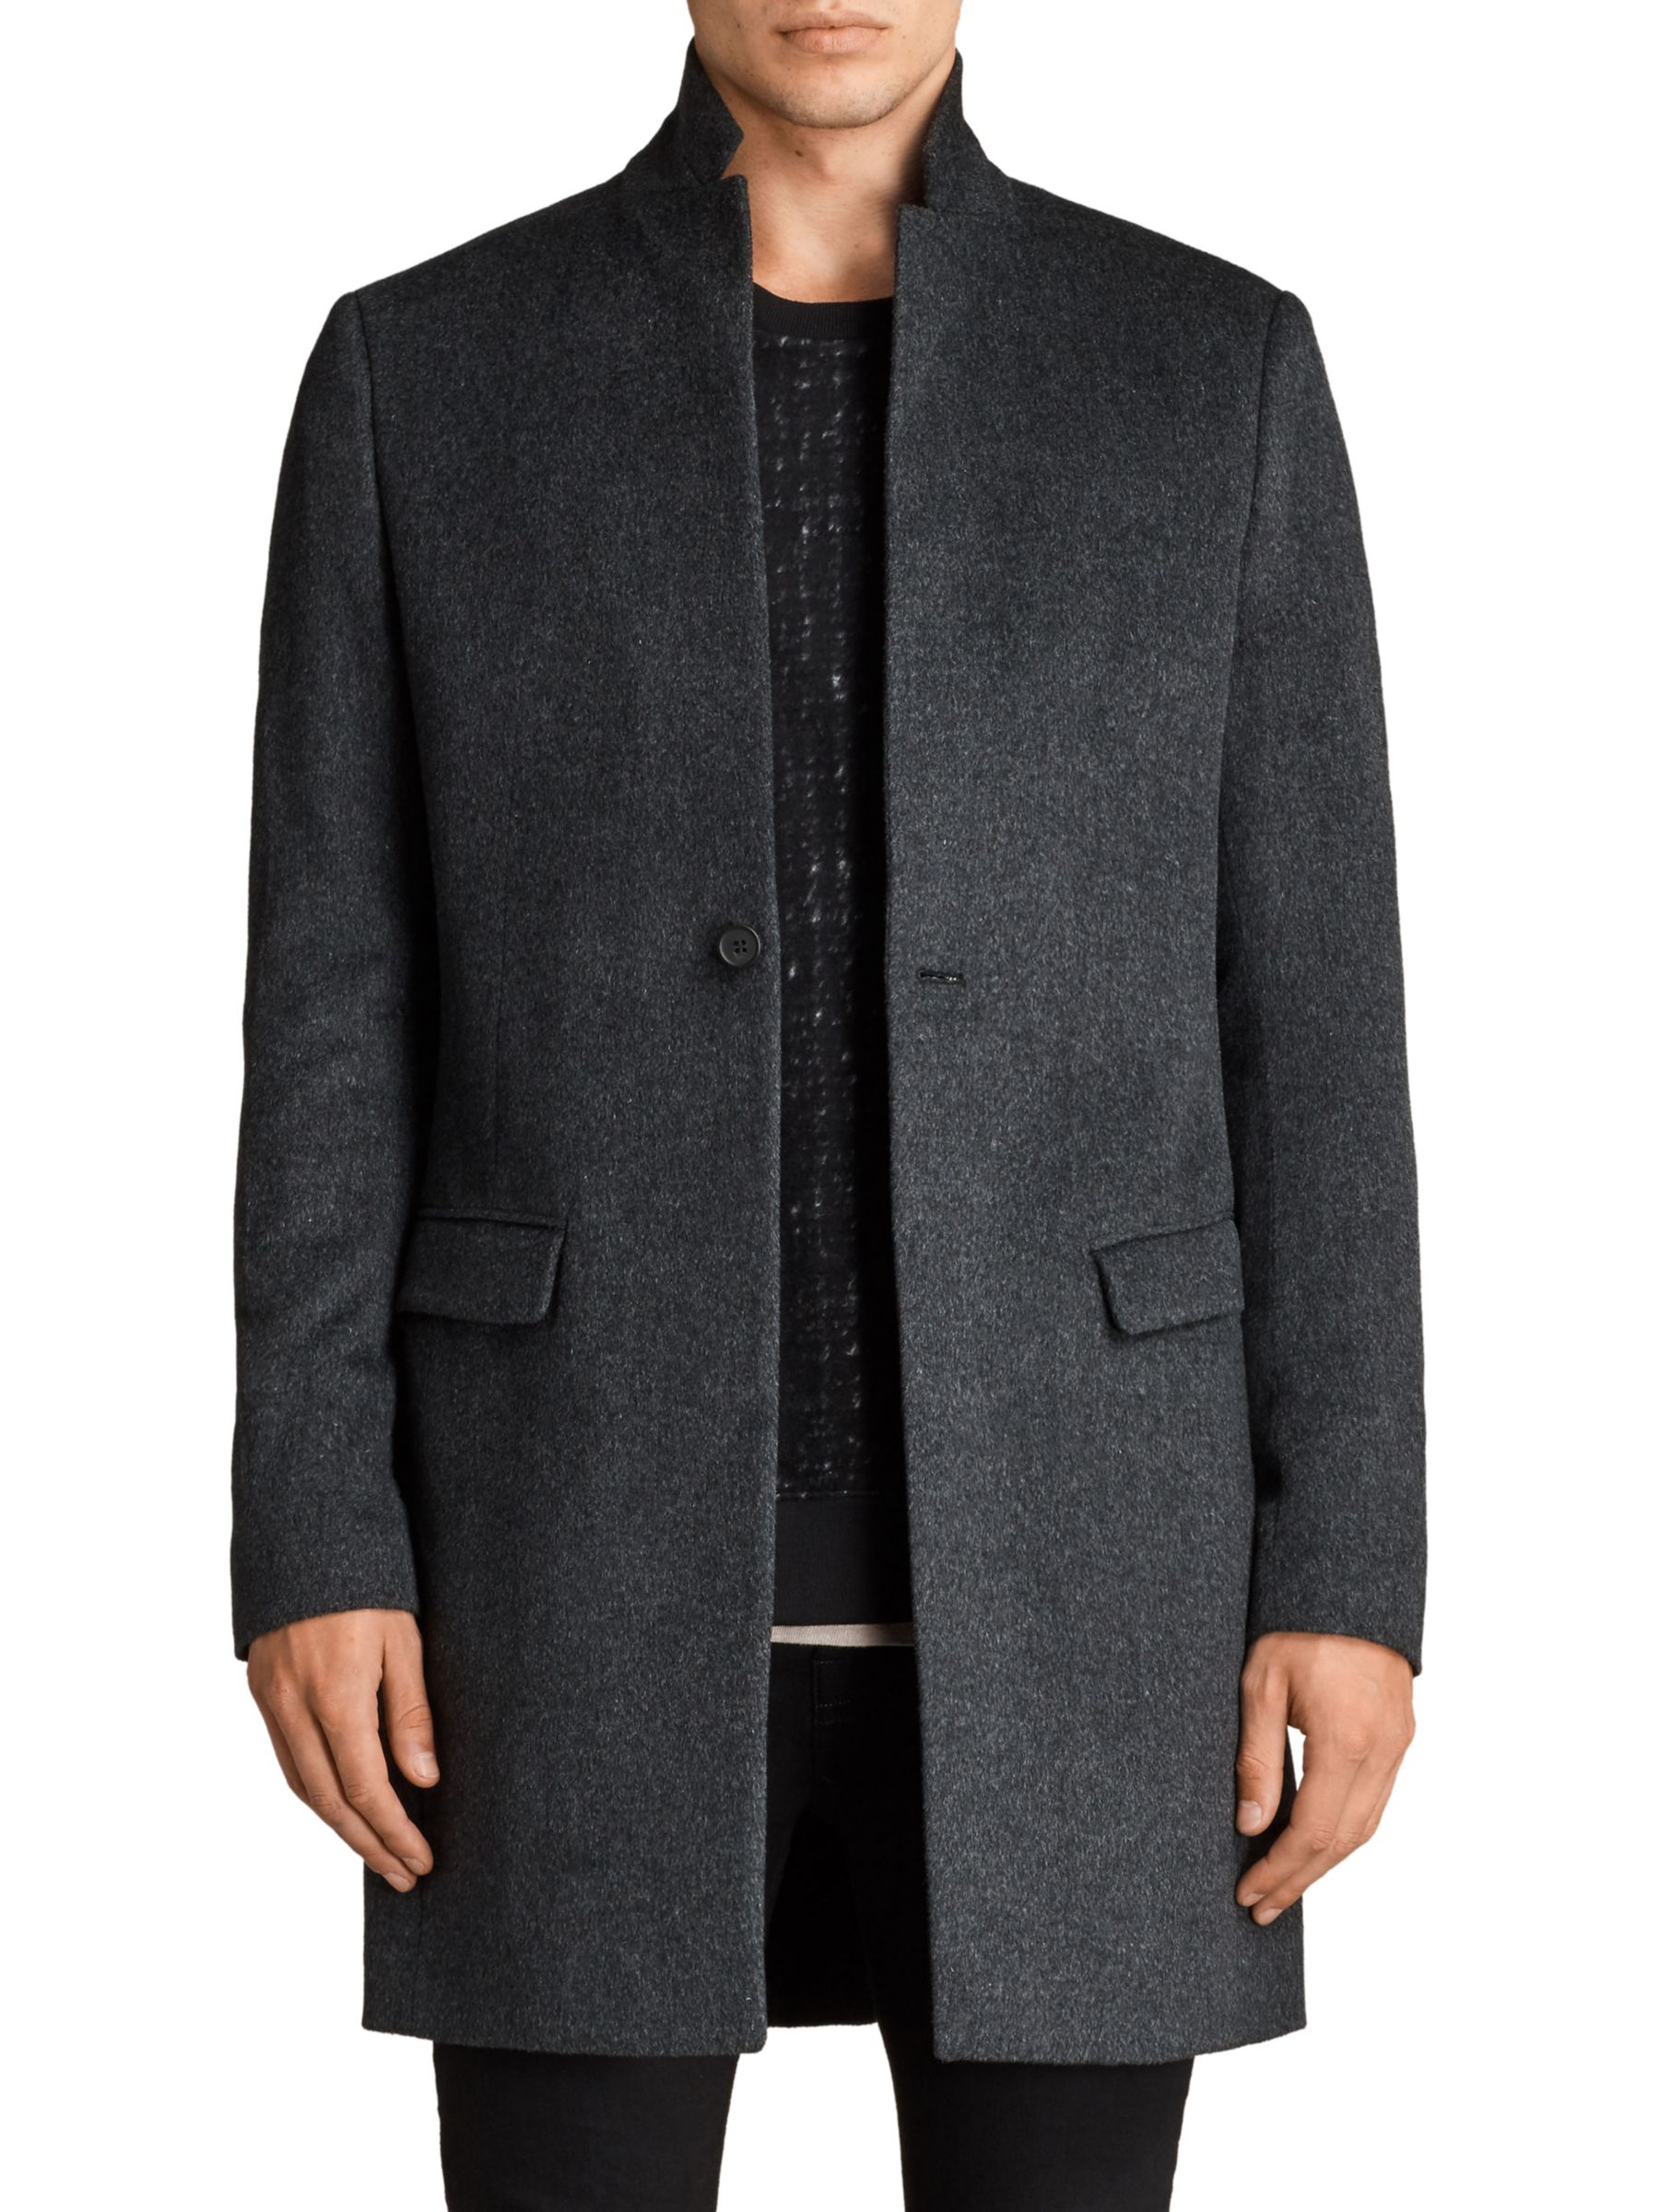 AllSaints AllSaints Bodell Wool Tailored Coat, Charcoal Grey